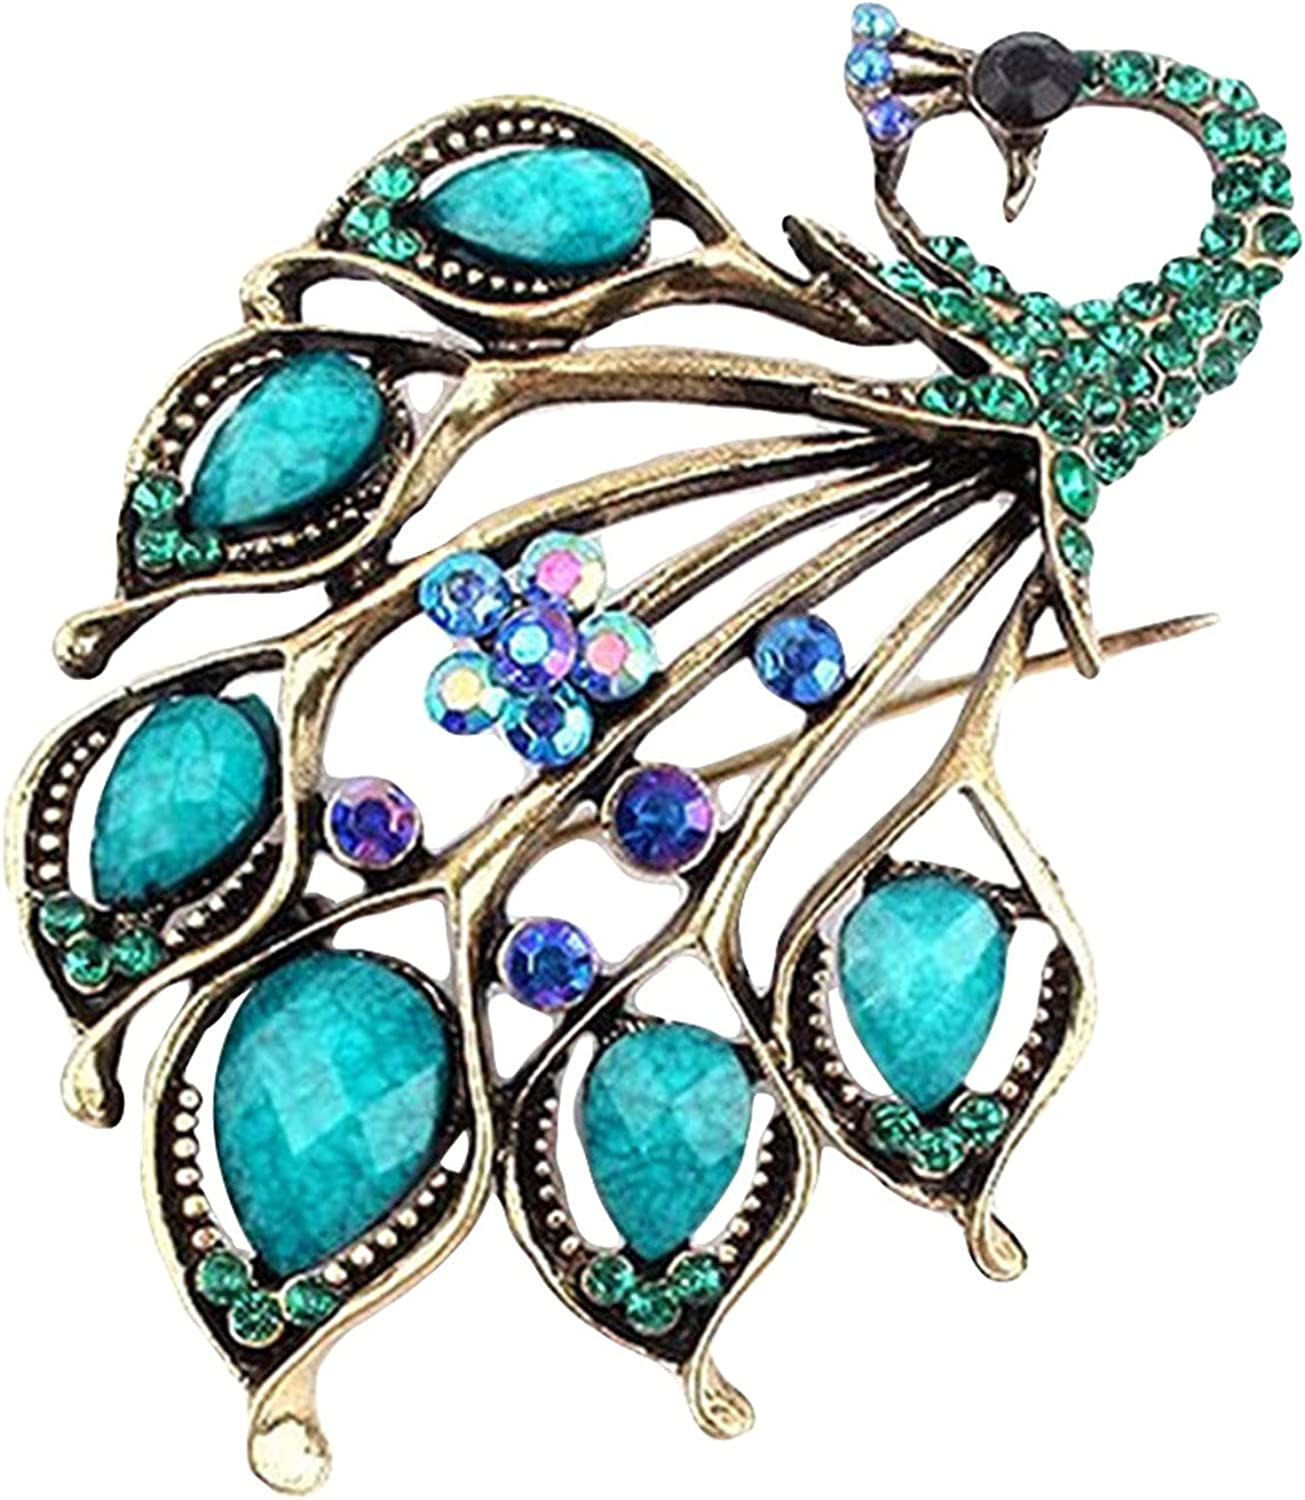 Handmade Brooches Buttons & Pins,Brooch Rhinestone Decor Peacock Shaped Alloy Women Fashion Brooch Buckle for Scarf